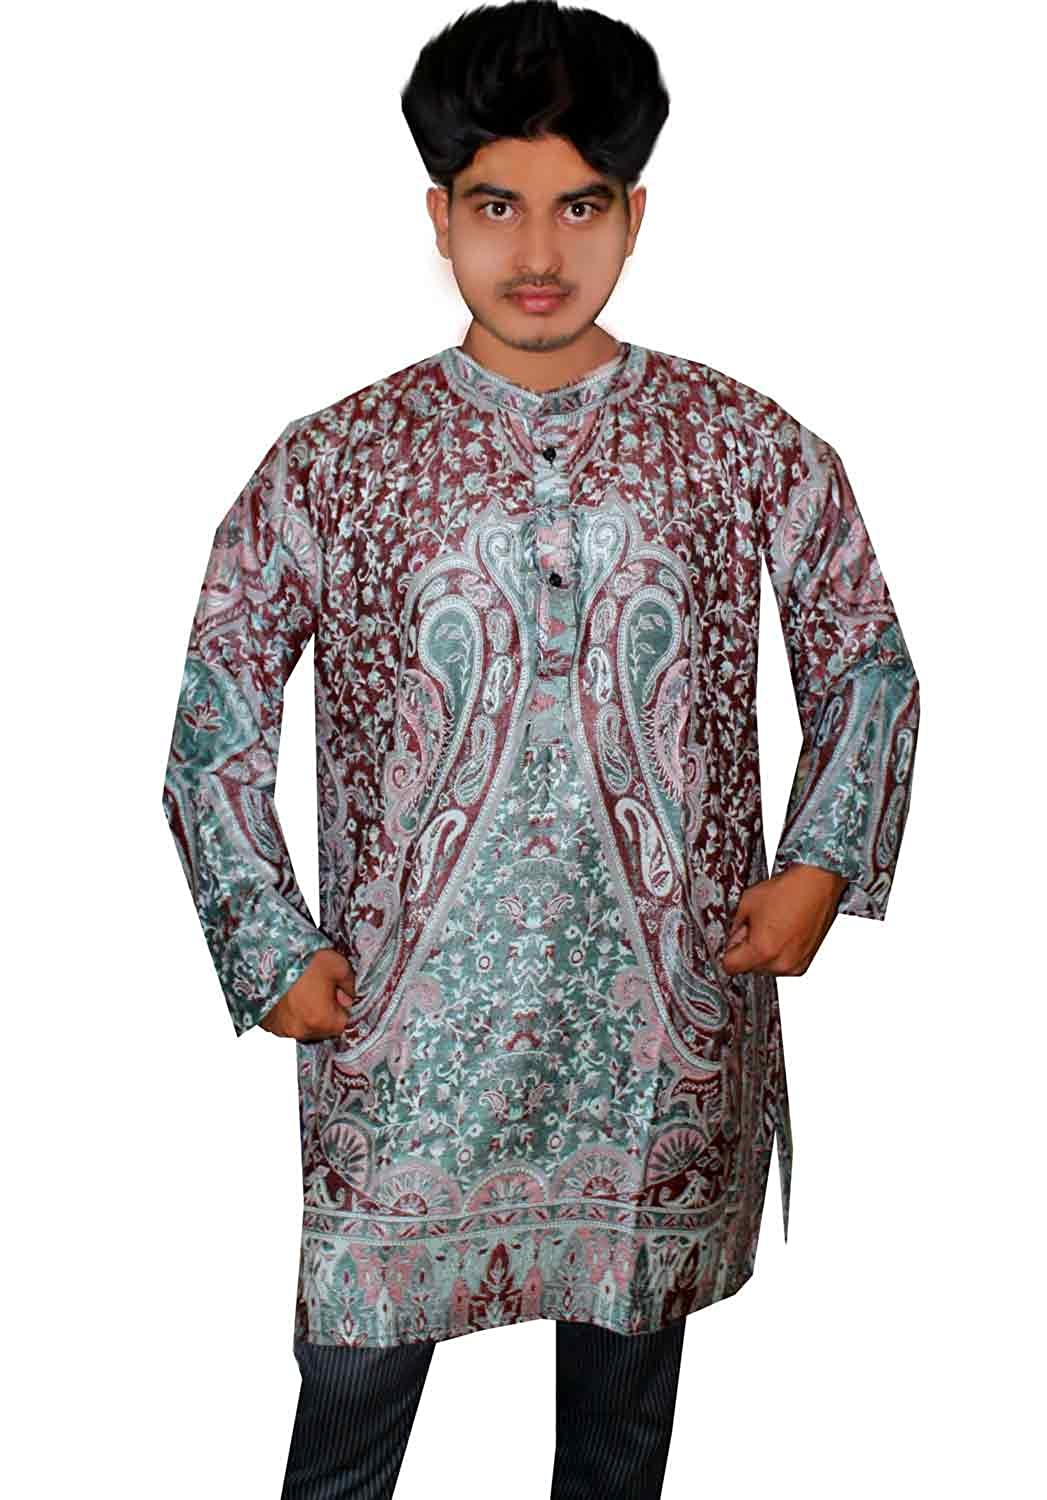 Lakkar Haveli Indian Men/'s Kurta Shirt Loose fit Hand Loom Pashmina Silk Paisley Print Green Color Plus Size